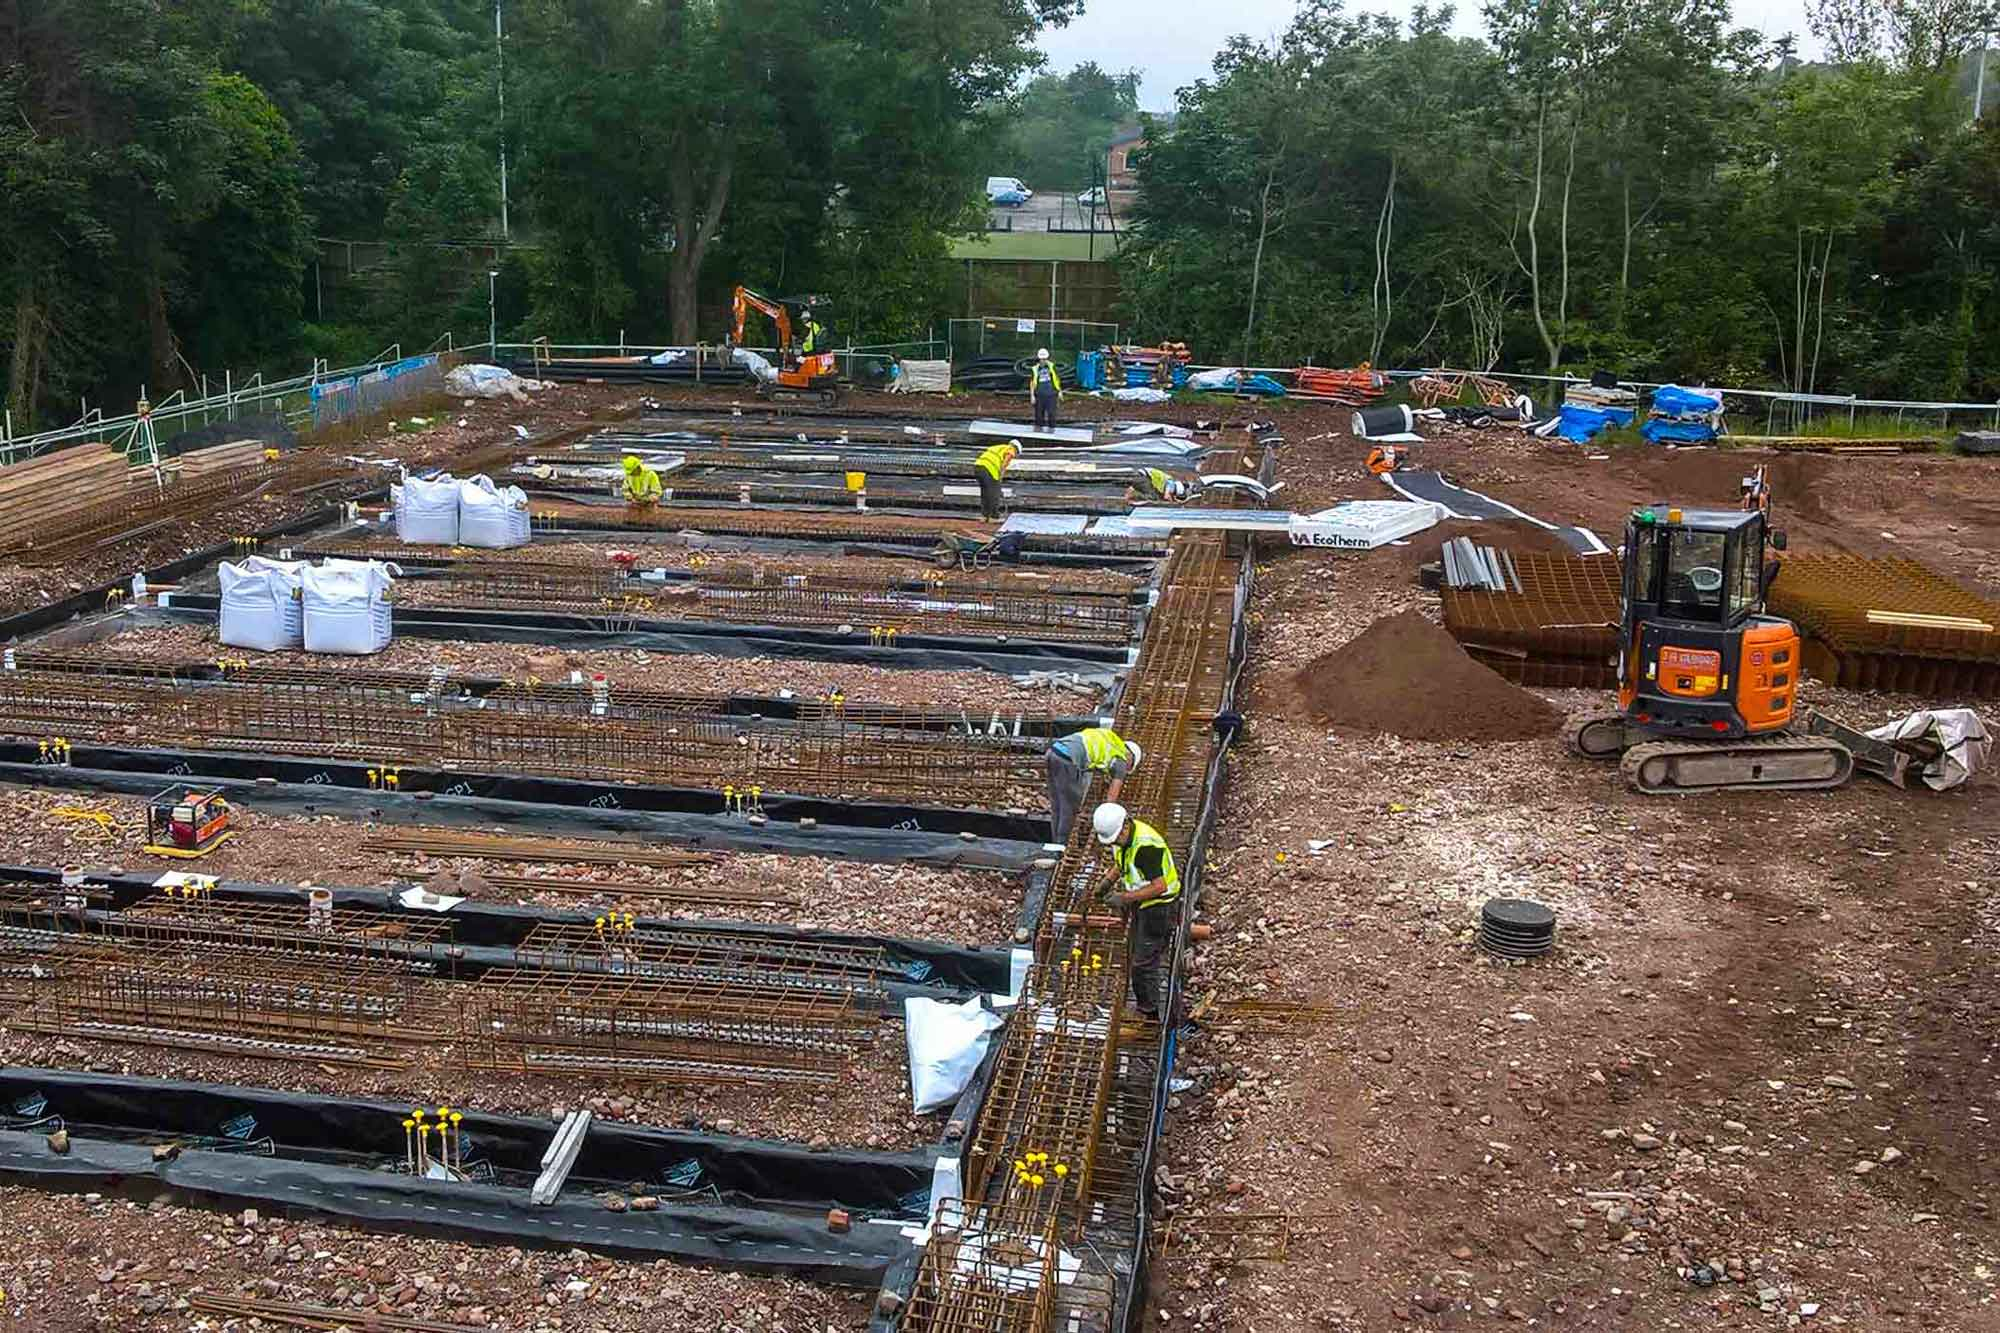 Projects - J A Burke Construction Limited -Midlands based ground works, civils and RC frame company.